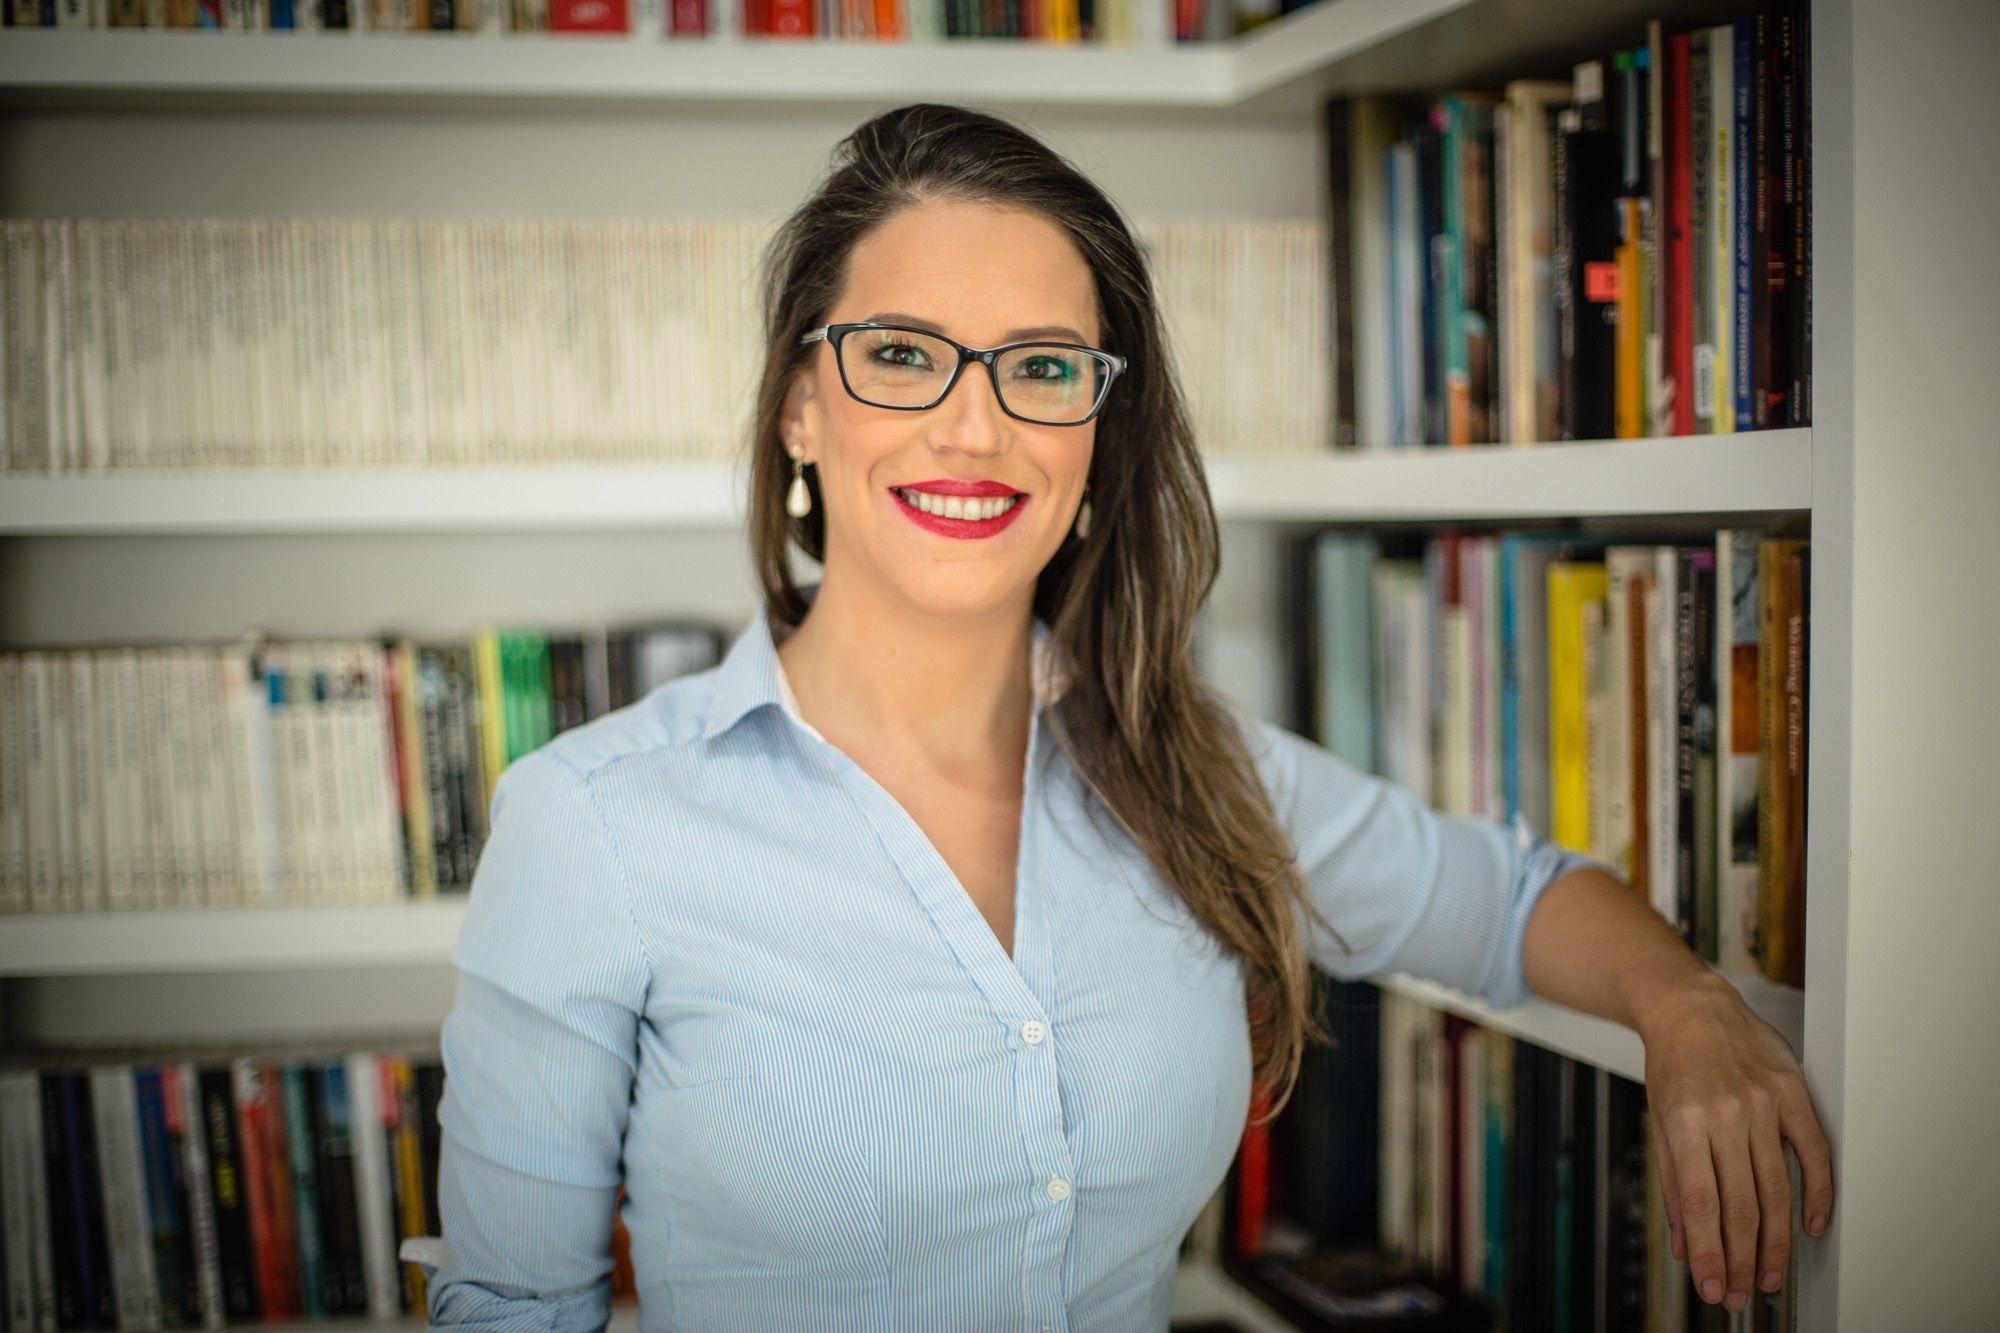 """LASP Public Issues Forum: """"From Hope to Hate: The Rise of Conservative Subjectivity in Brazil"""" by Rosana Pinheiro-Machado, Federal University of Santa Maria, Brazil"""